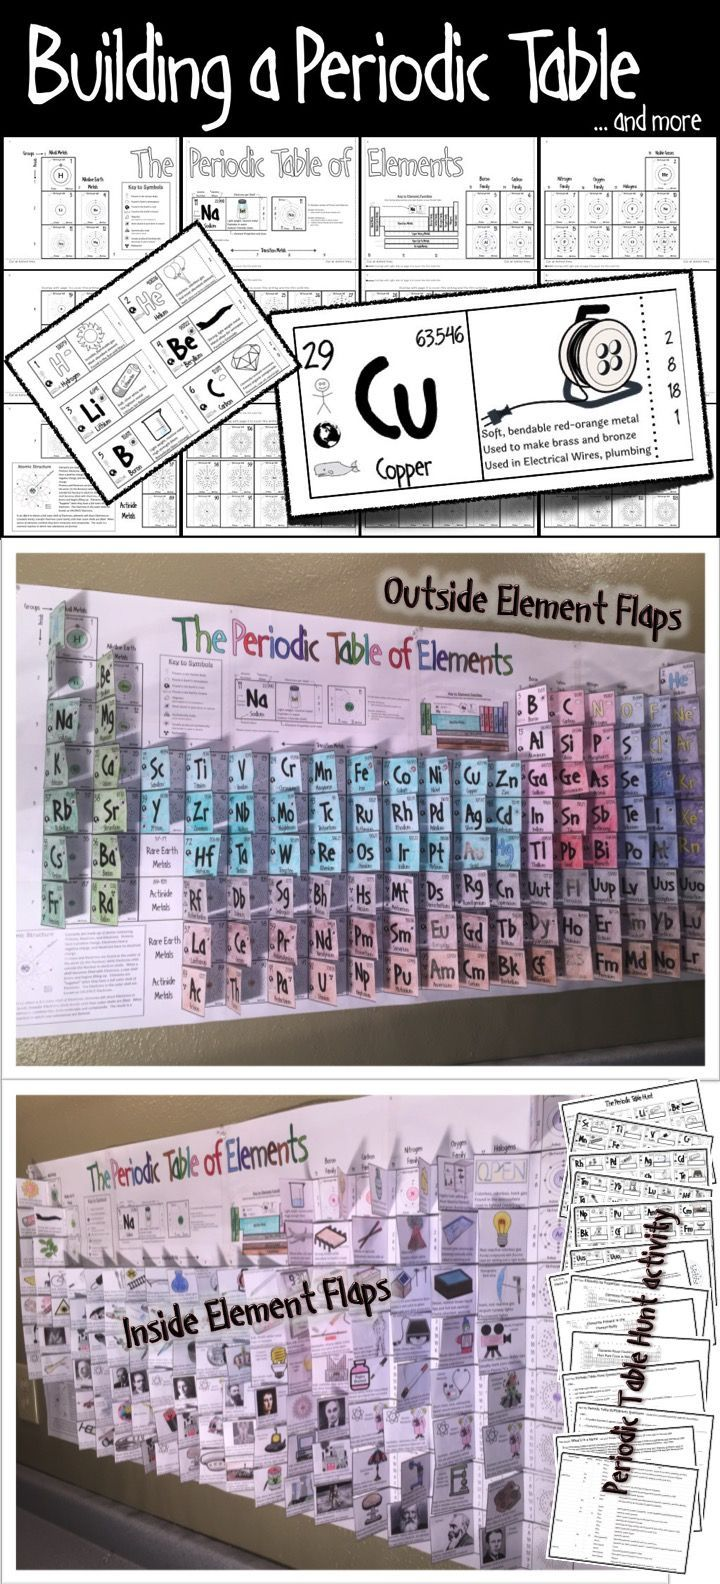 Best 25 periodic tabel ideas on pinterest periodic table exo building a periodic table and more gamestrikefo Gallery